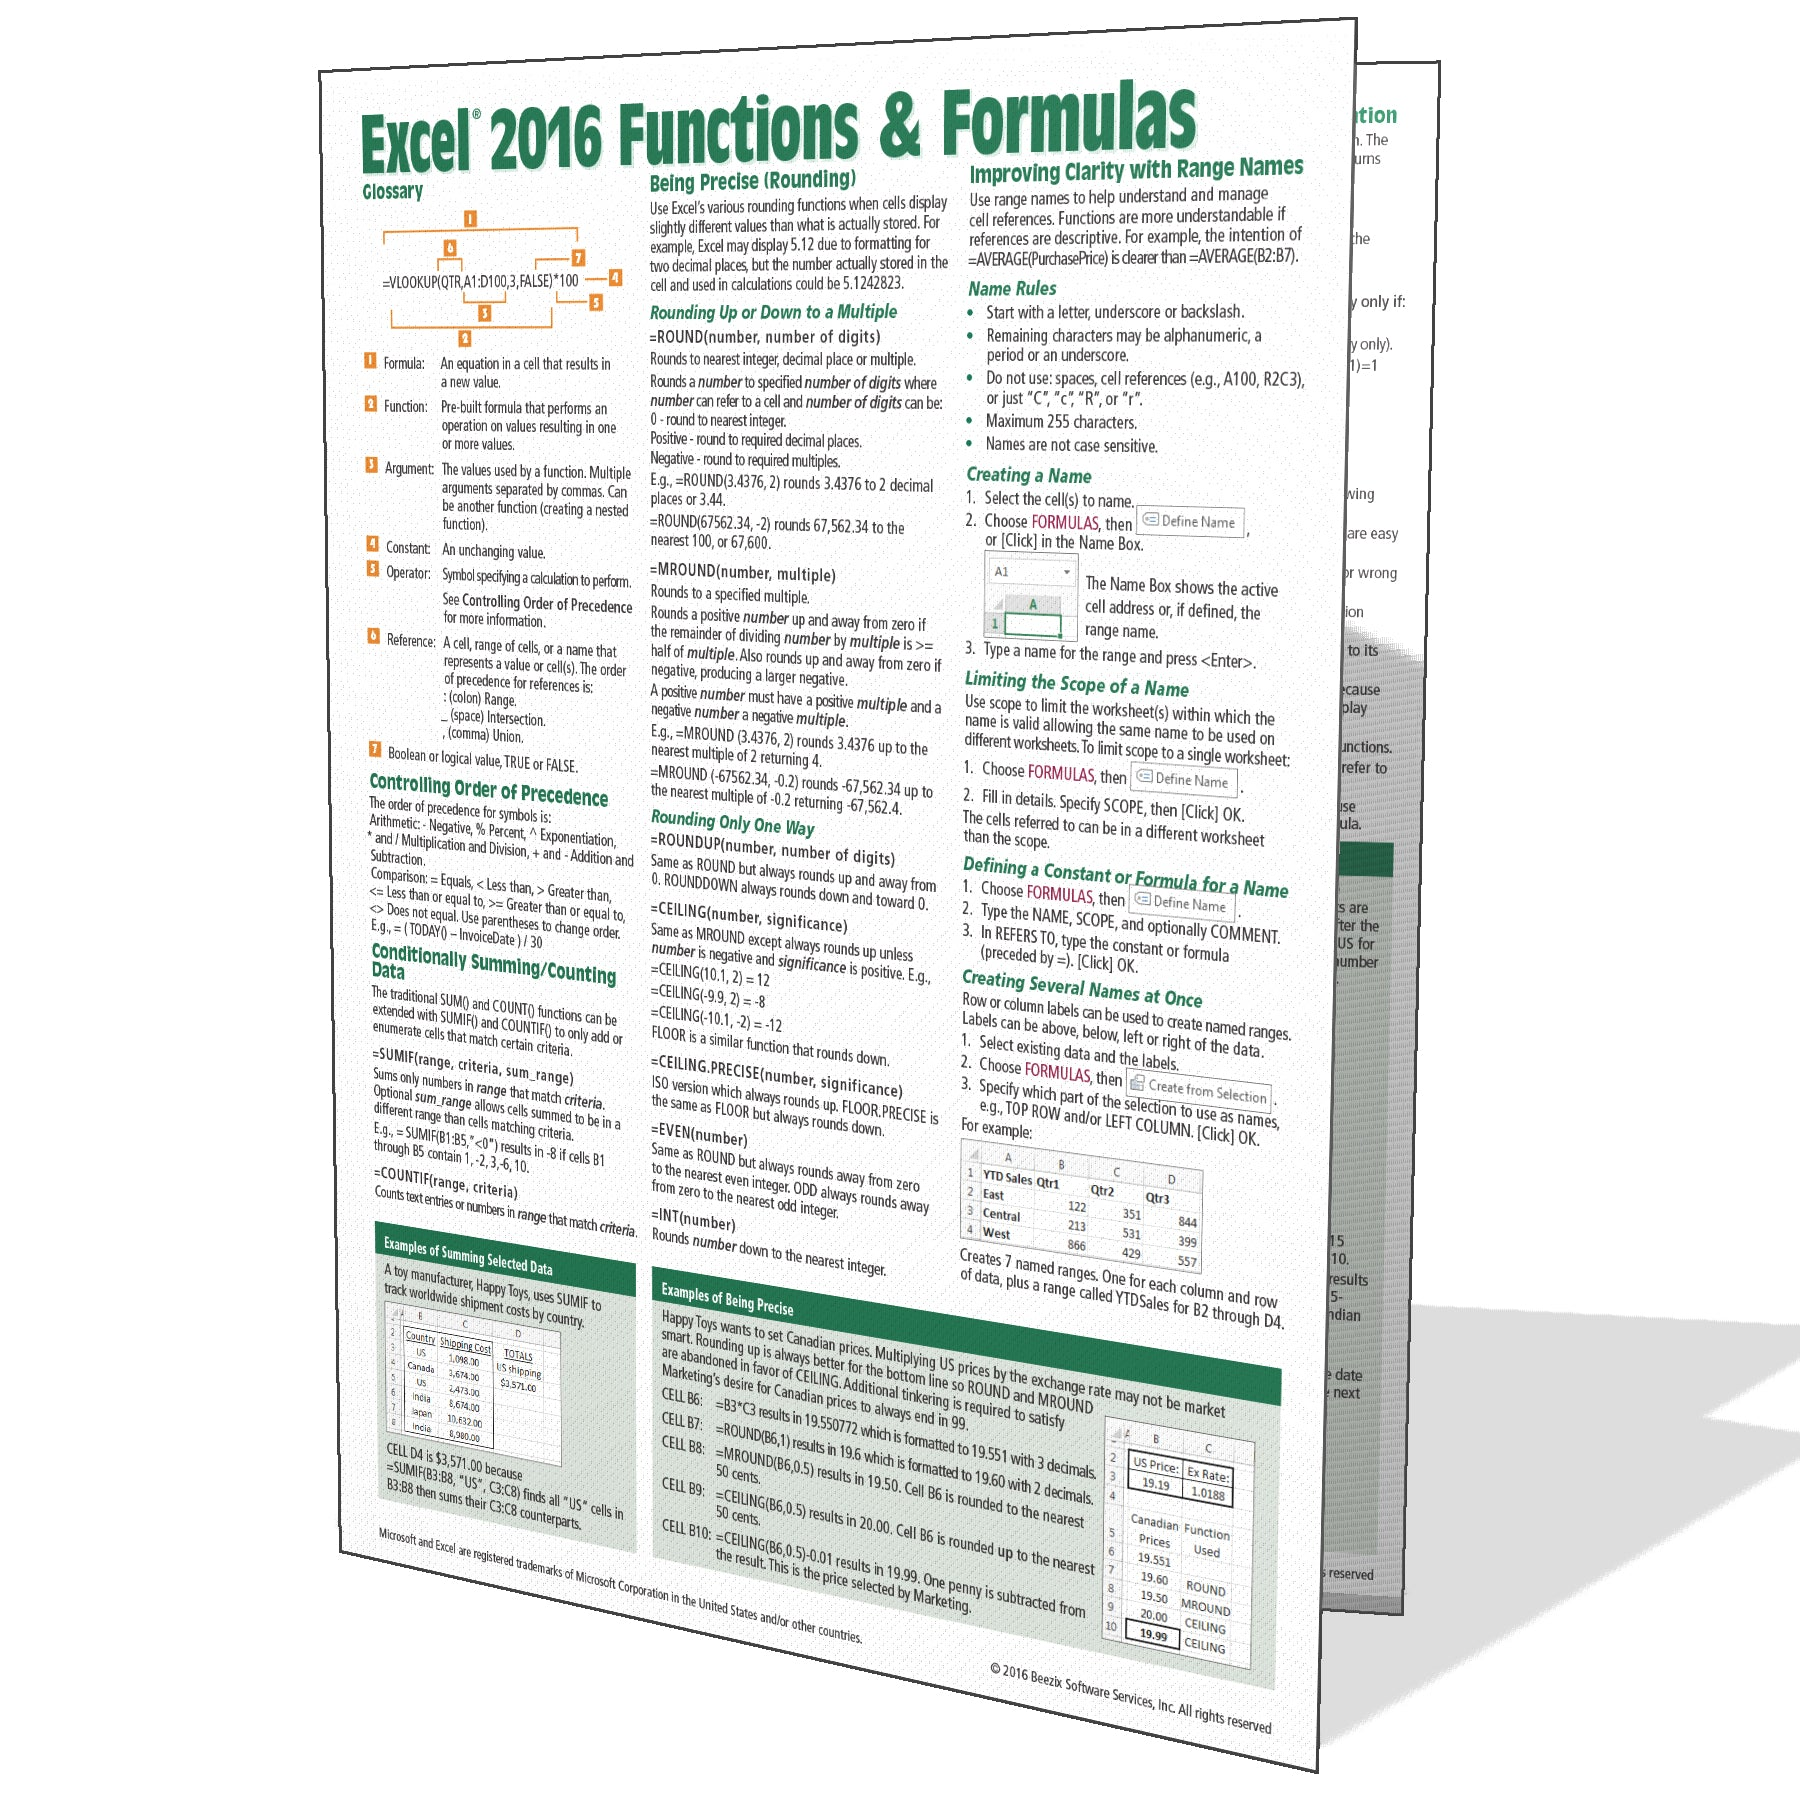 Excel 20 Functions & Formulas Quick Reference